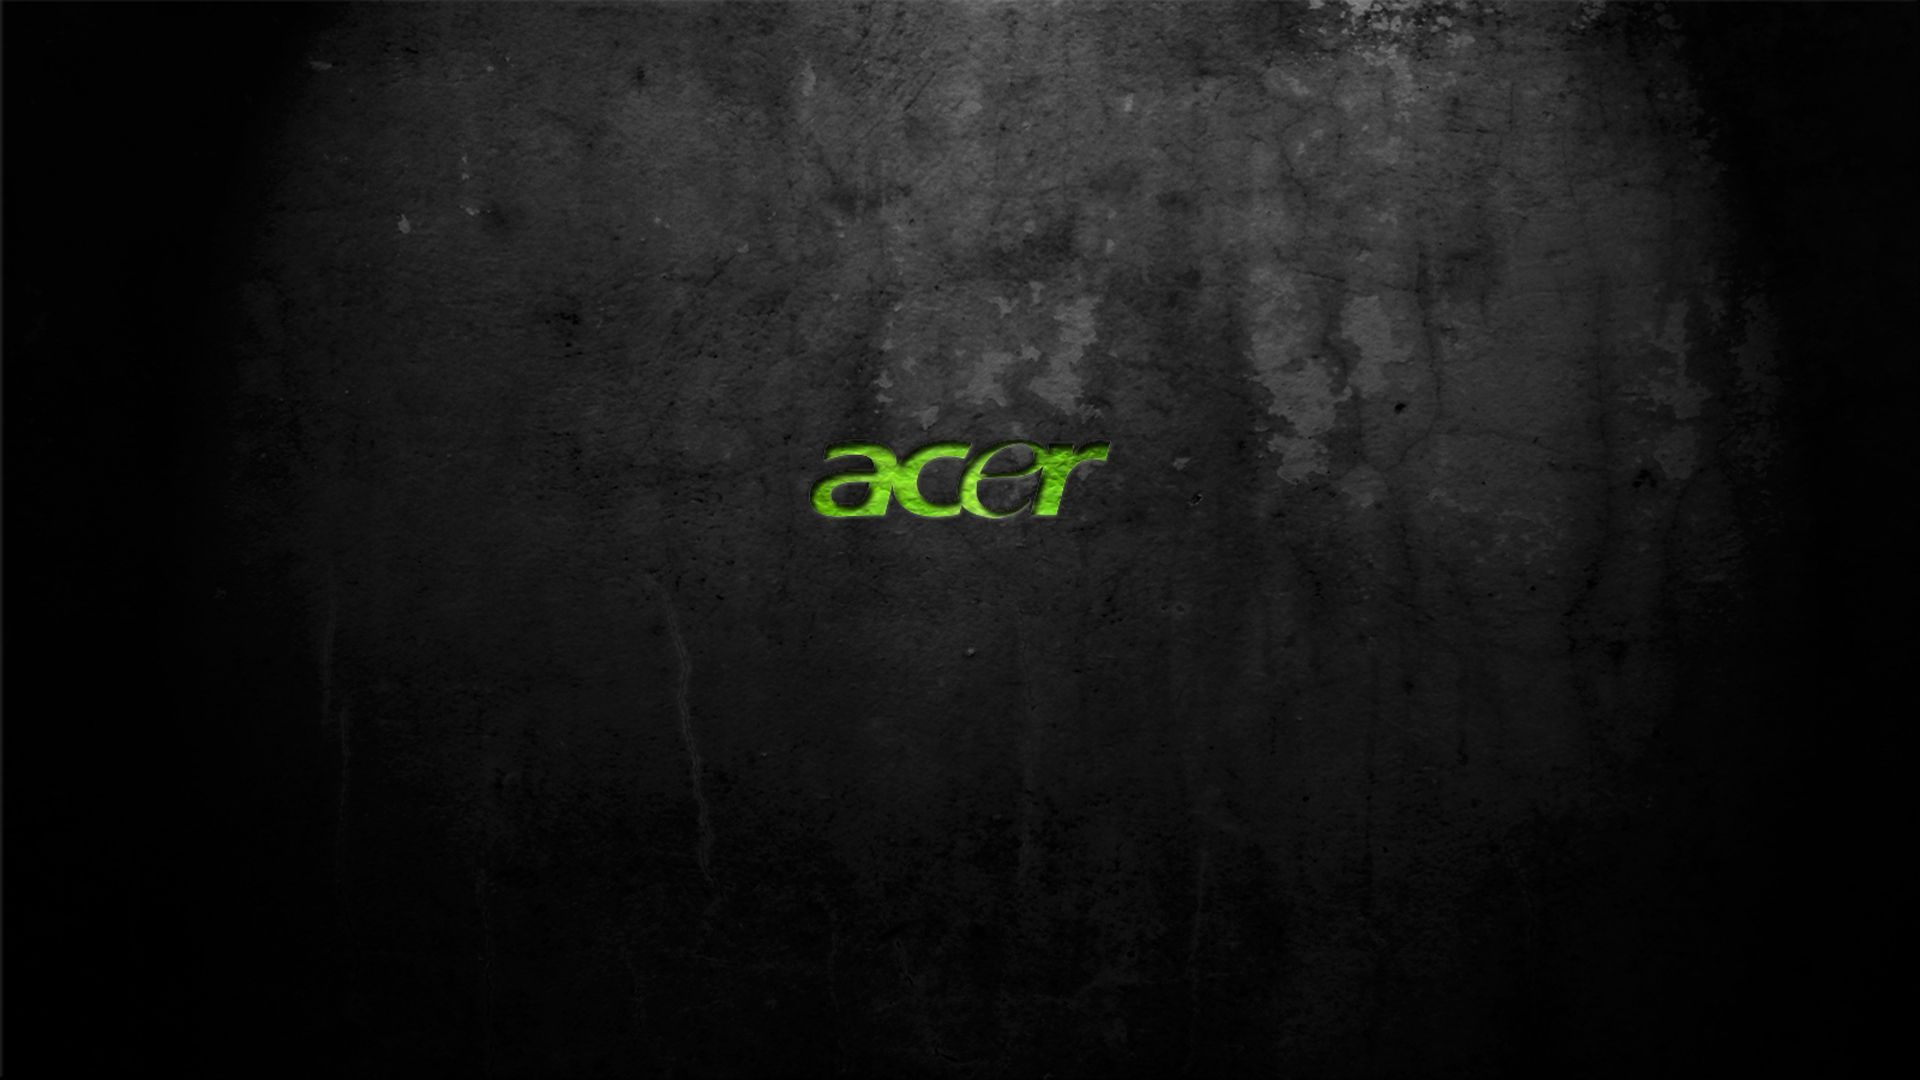 Acer Wallpapers 26